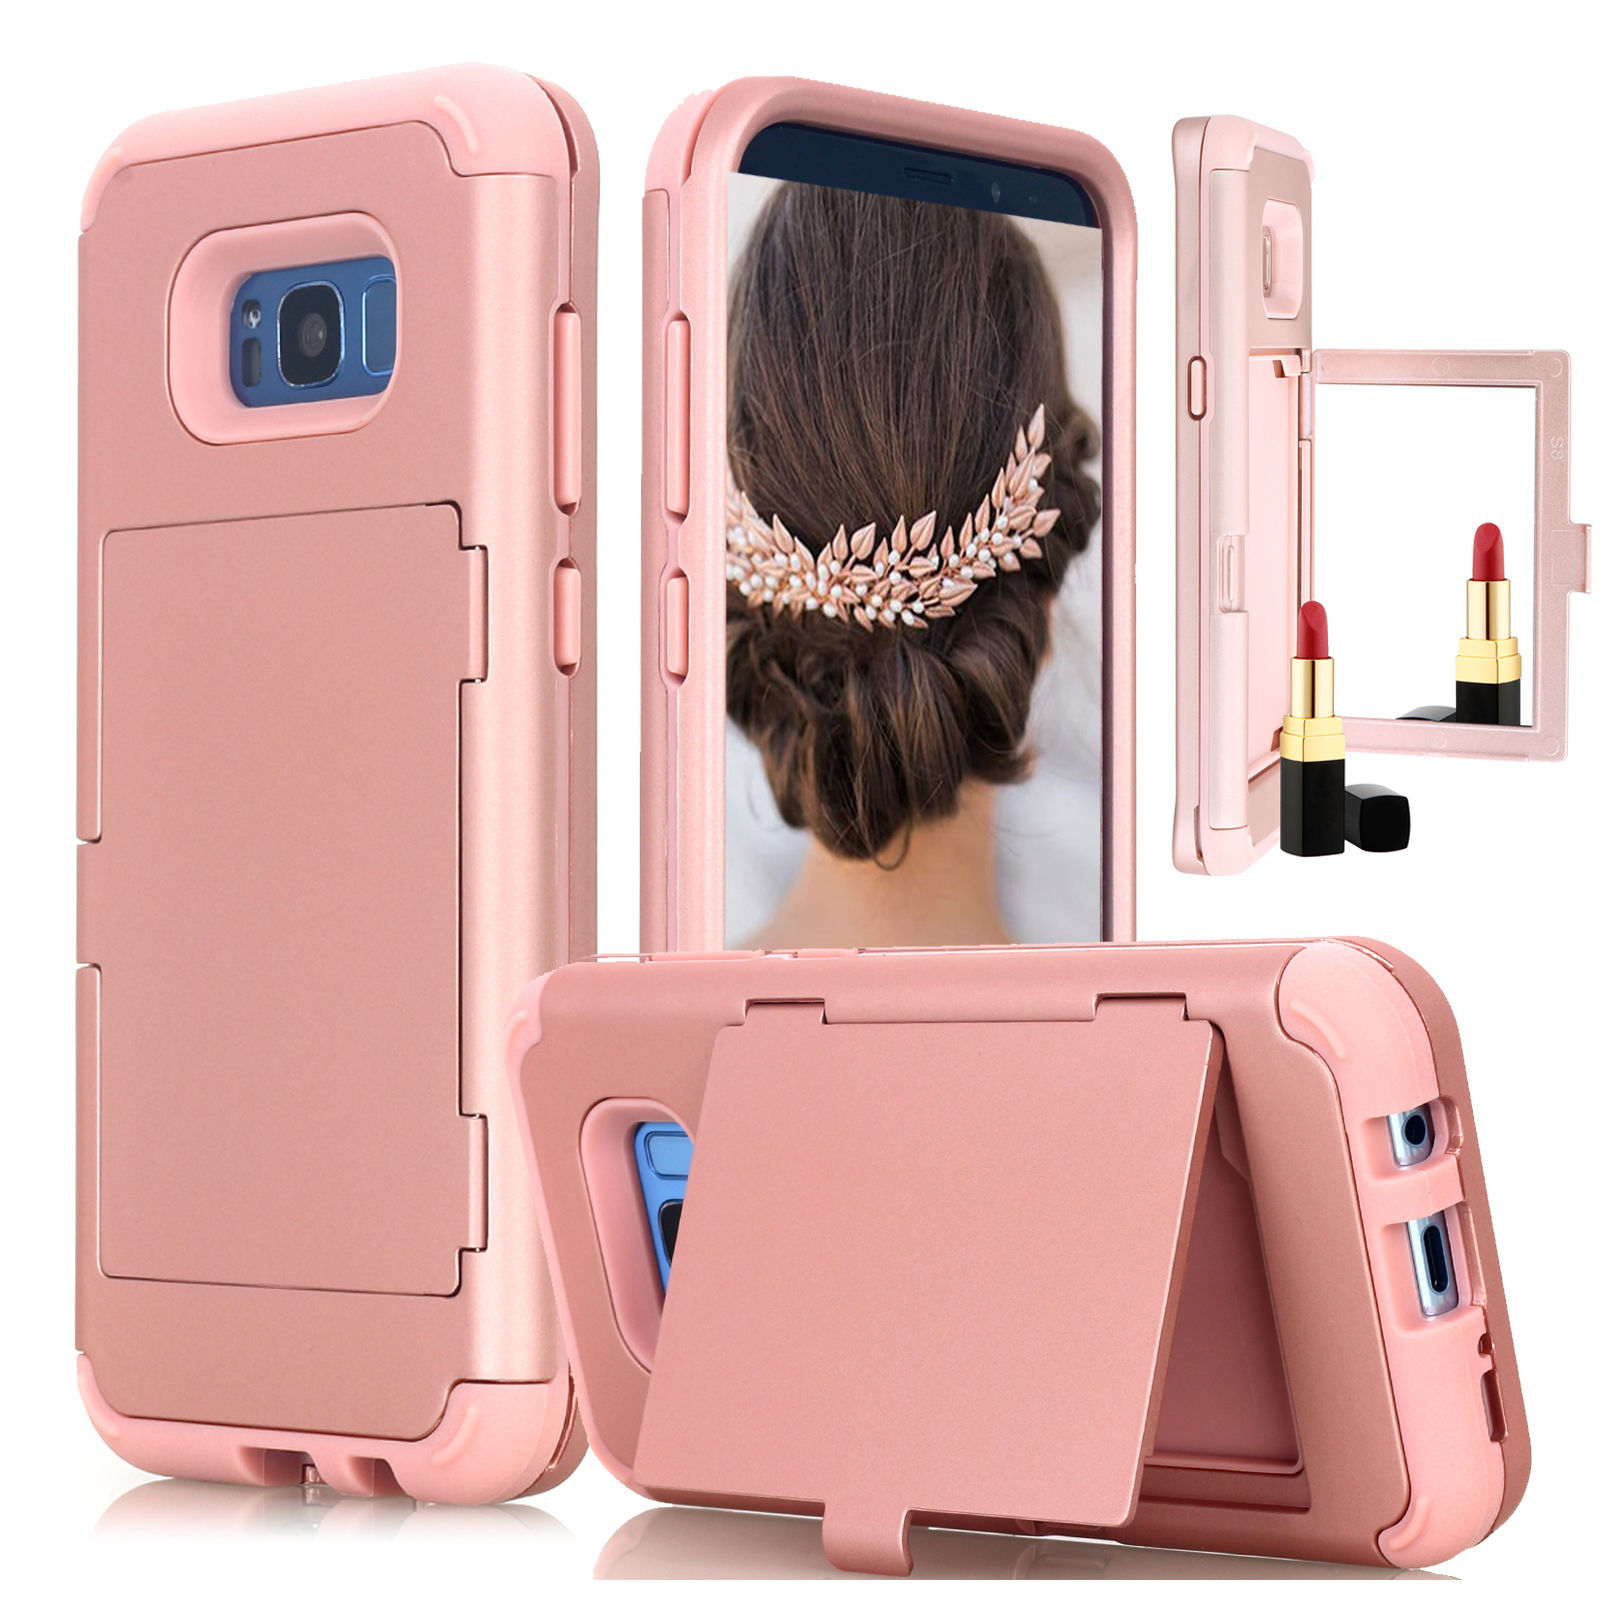 Galaxy S8 Plus Case, Three Layer Heavy Duty High Impact Resistant Hybrid Protective Cover Case with card Holder Slot and Mirror For Samsung Galaxy S8 Plus - Rose Gold